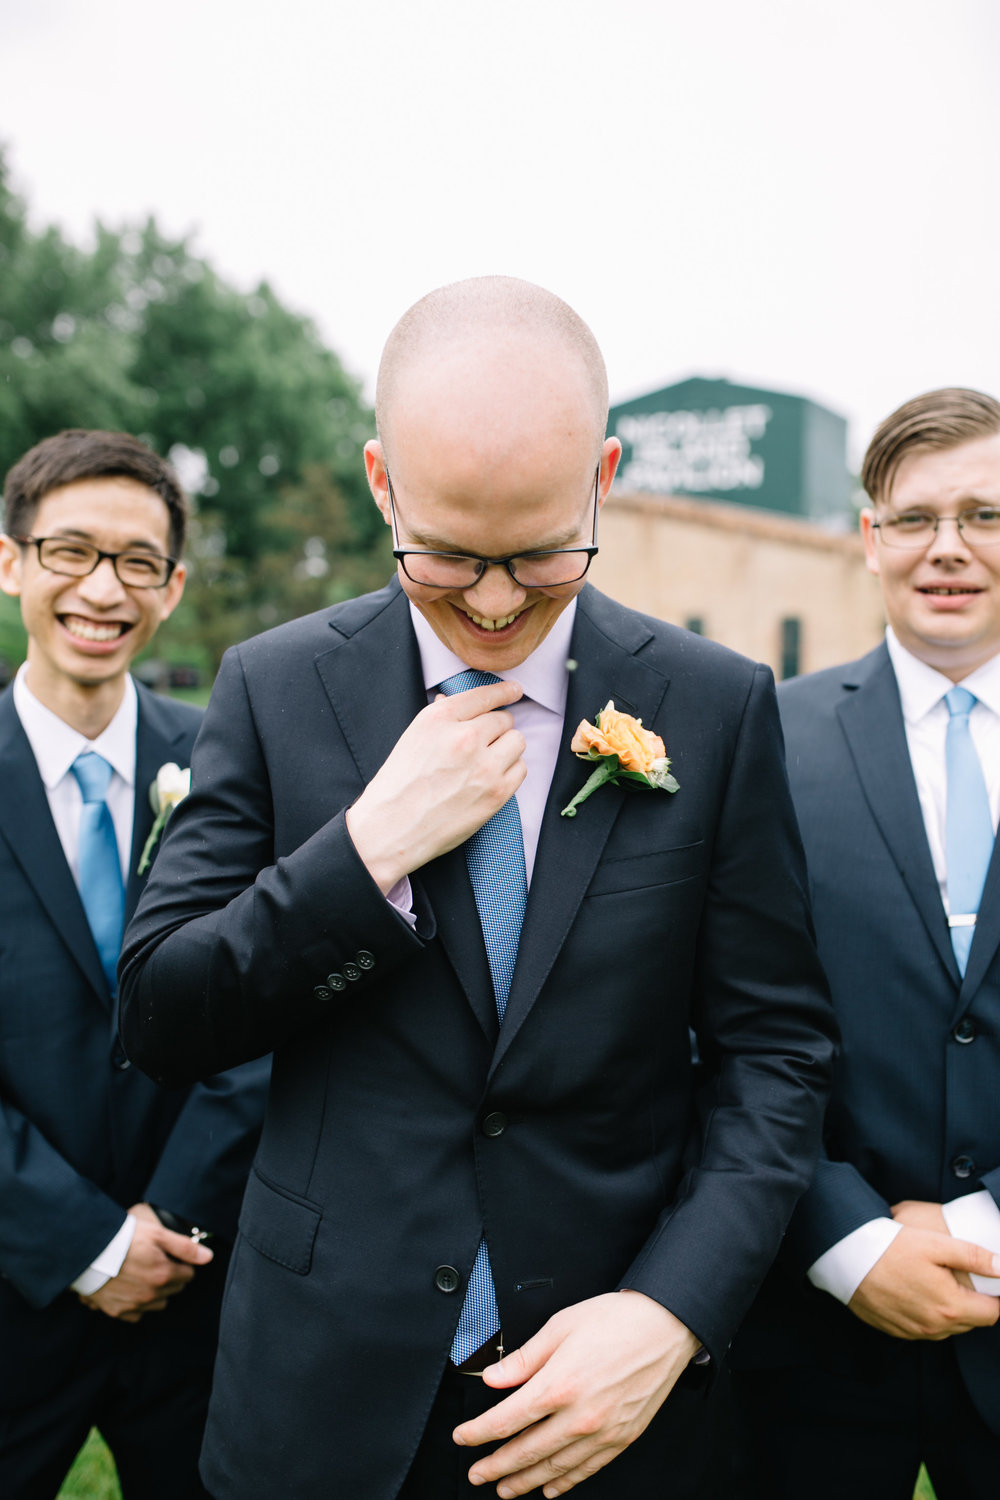 groom in bright blue tie, glasses, and bright boutonniere, Whims and Joy Minneapolis photographer :: Sixpence Events & Planning Minnesota wedding planner :: Nicollet Island Pavilion.jpg